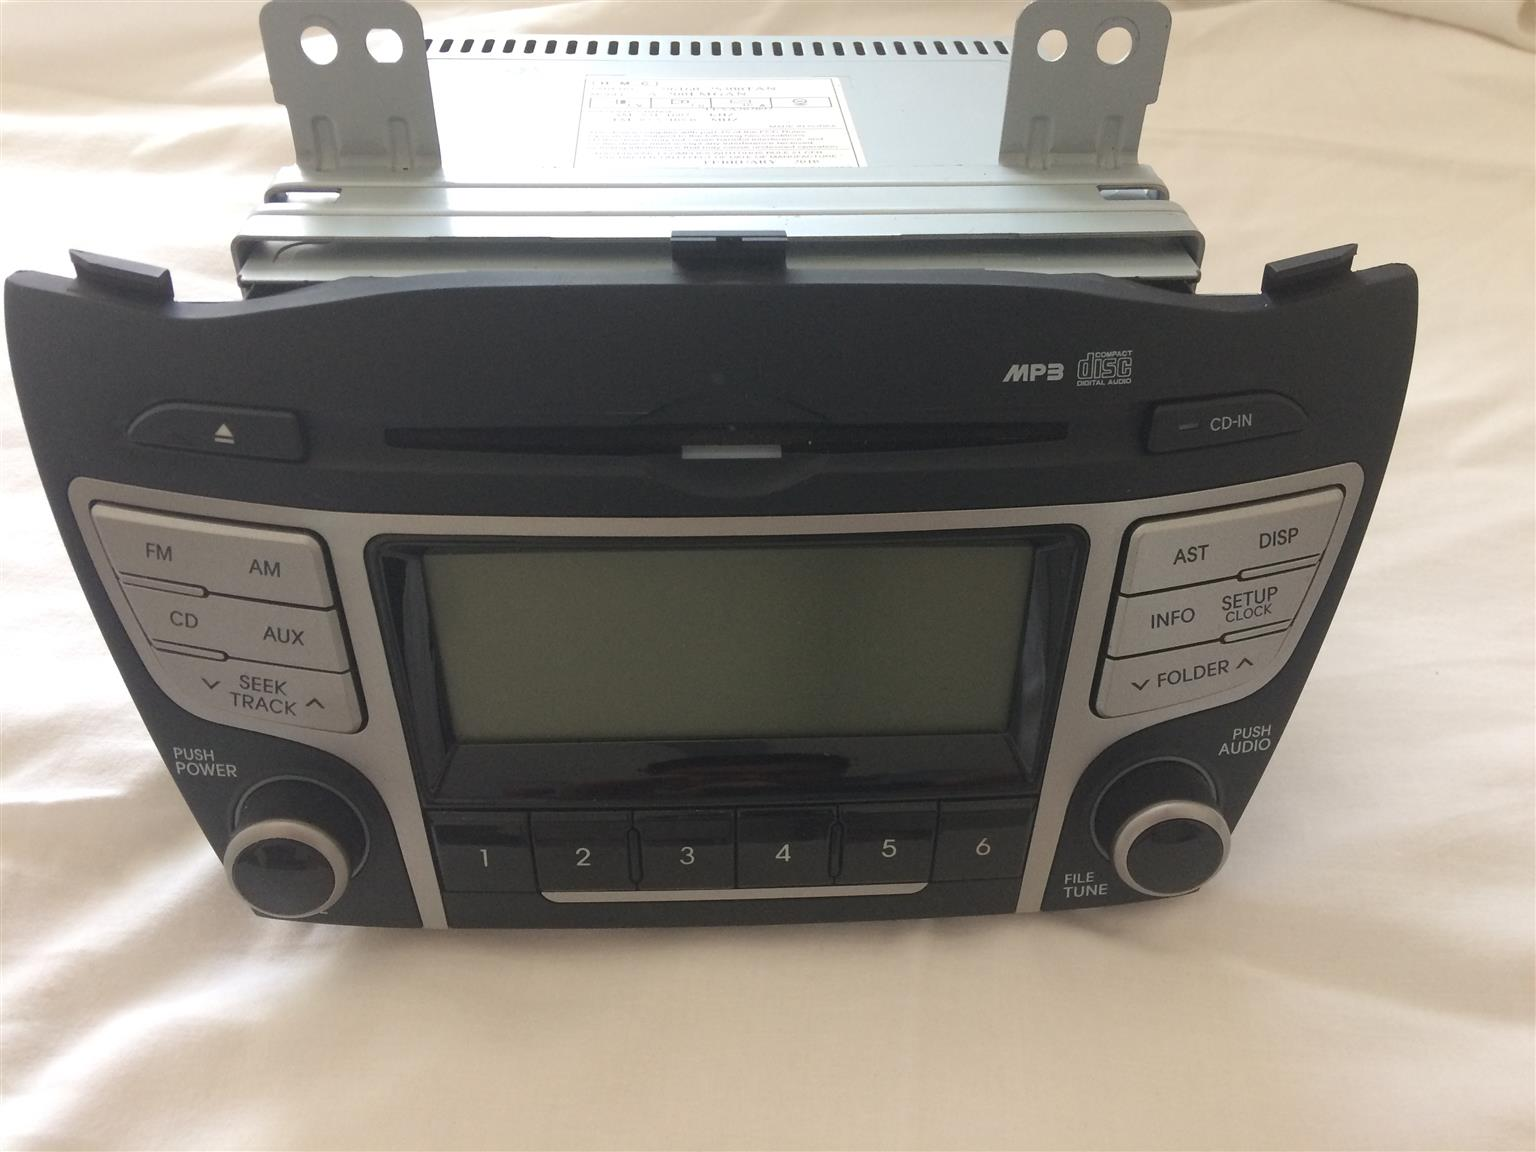 Car Audio And Entertainment Systems In Cape Town Junk Mail Wiring Stereo To Leisure Battery Hyundai Ix35 Bluetooth Radio Cd Mp3 Player